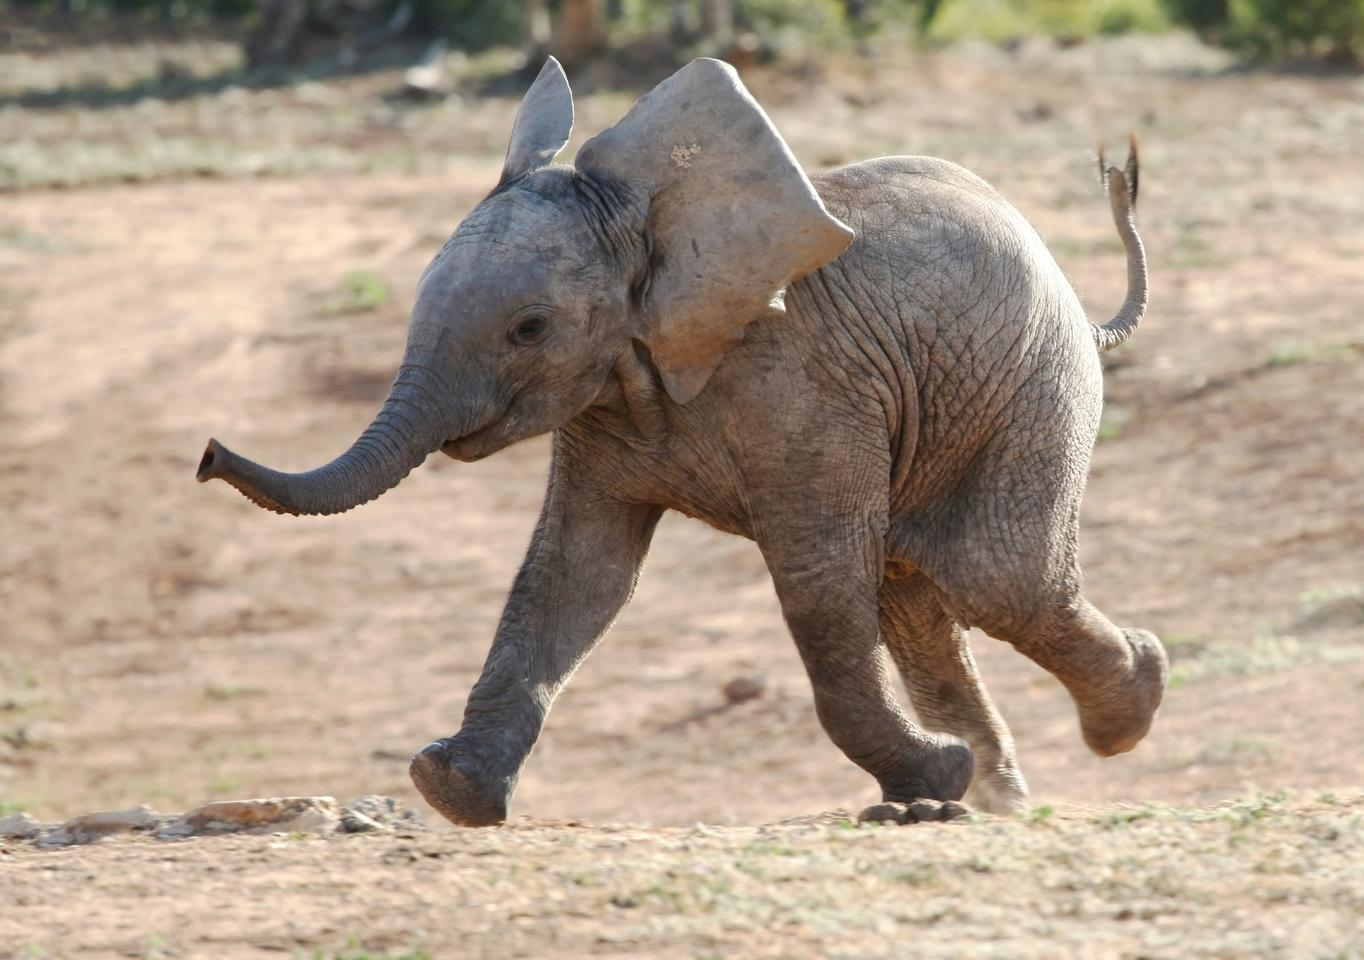 A baby African elephant on the move